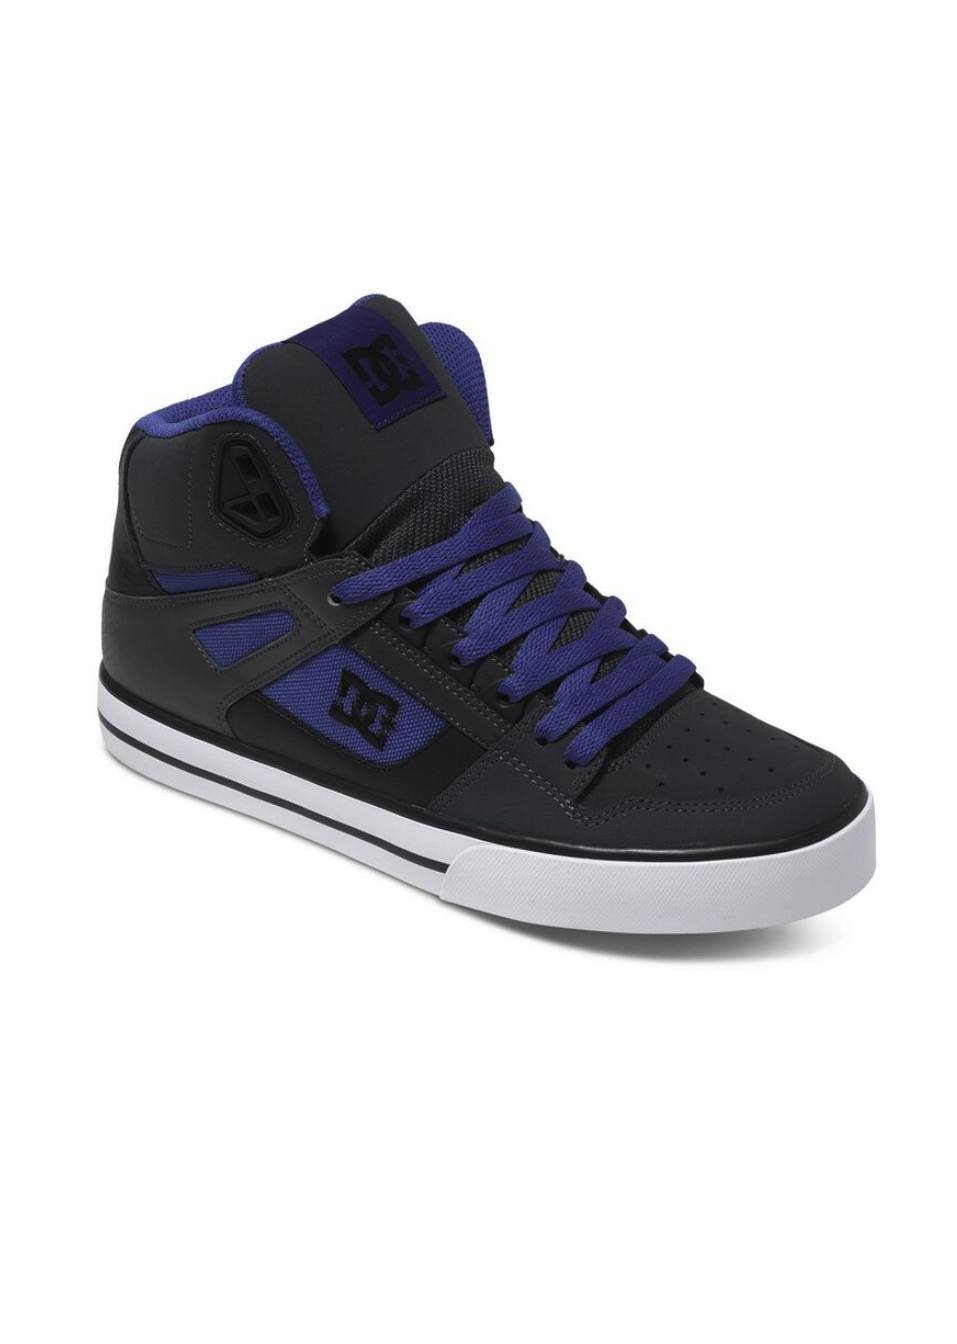 DC SHOES SPARTAN HIGH - LM BOARD STORE